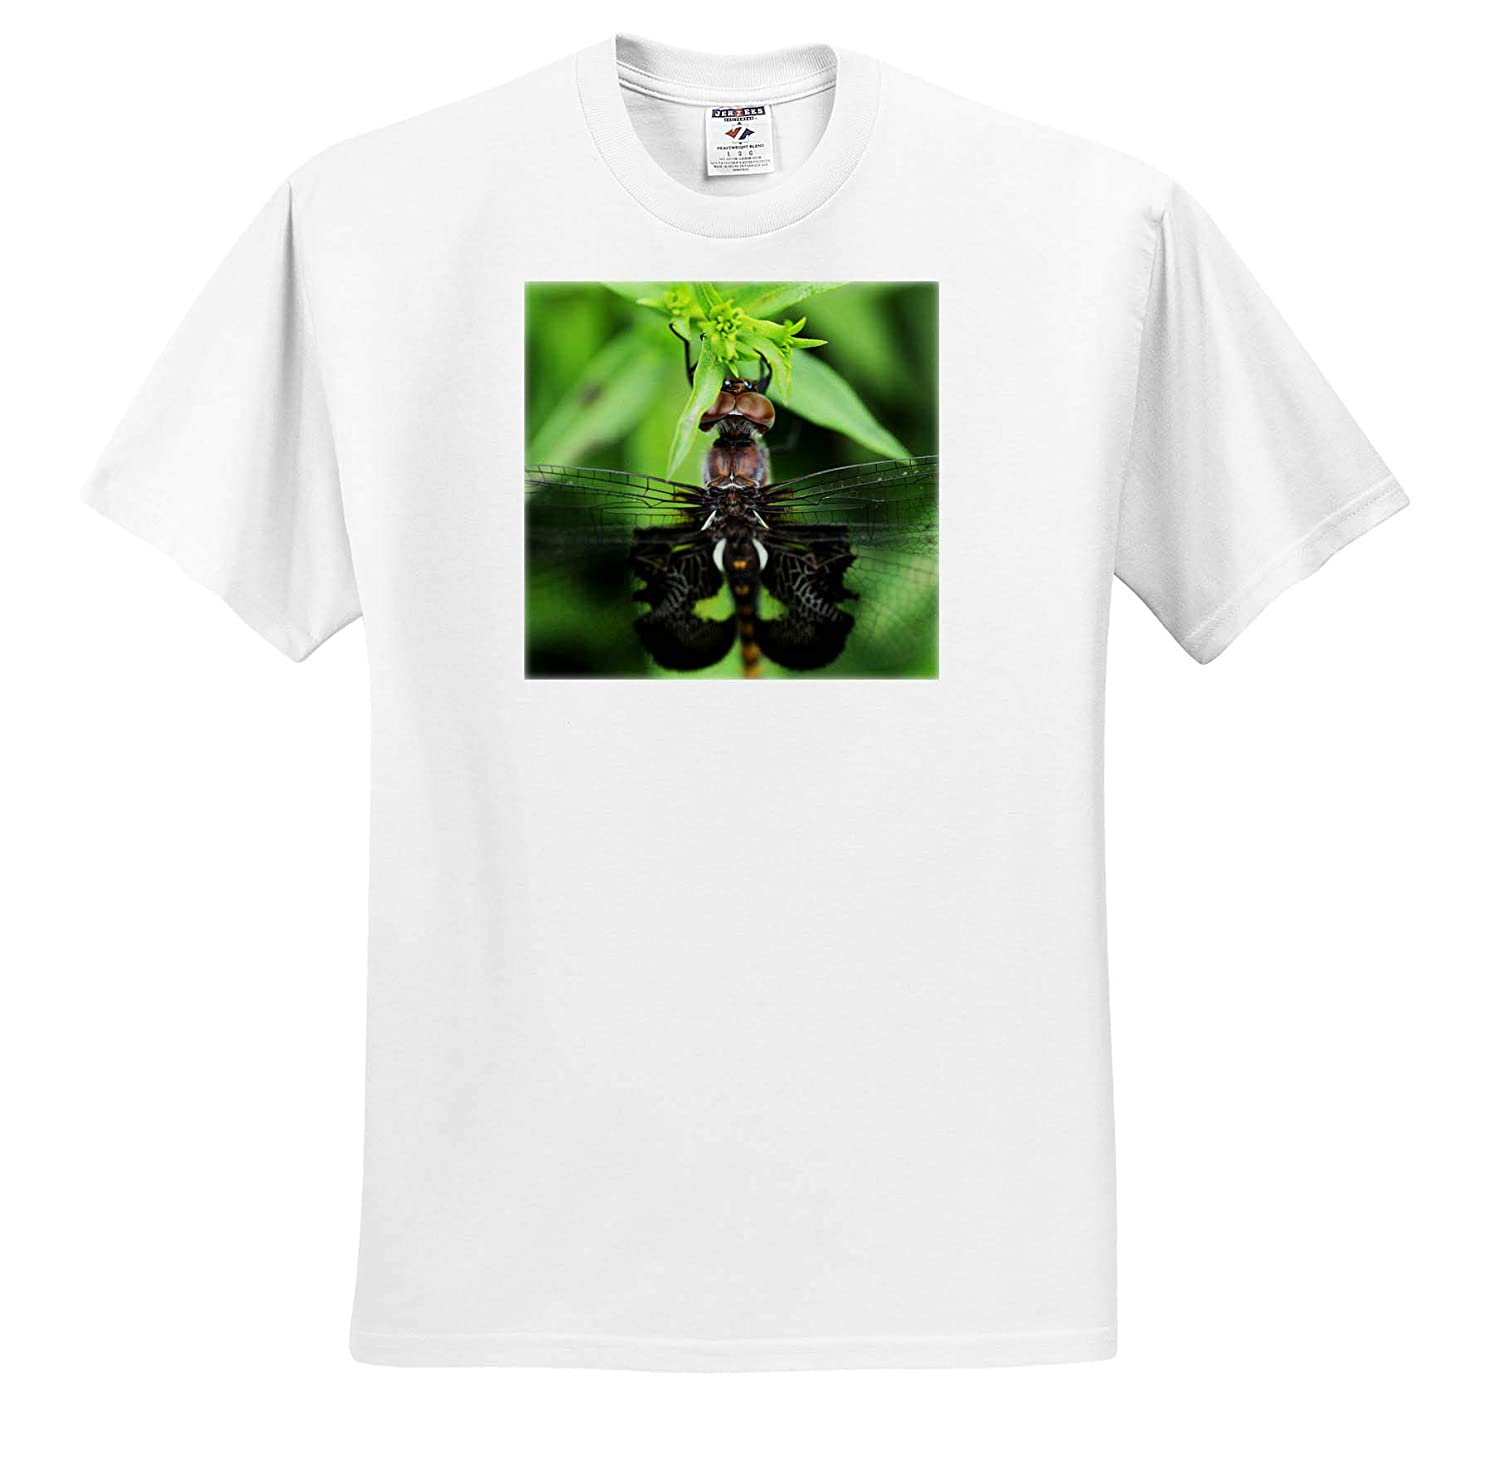 ts/_316750 Macro Photograph of The Eyes of a Black Saddlebags Dragonfly 3dRose Stamp City - Adult T-Shirt XL Insects